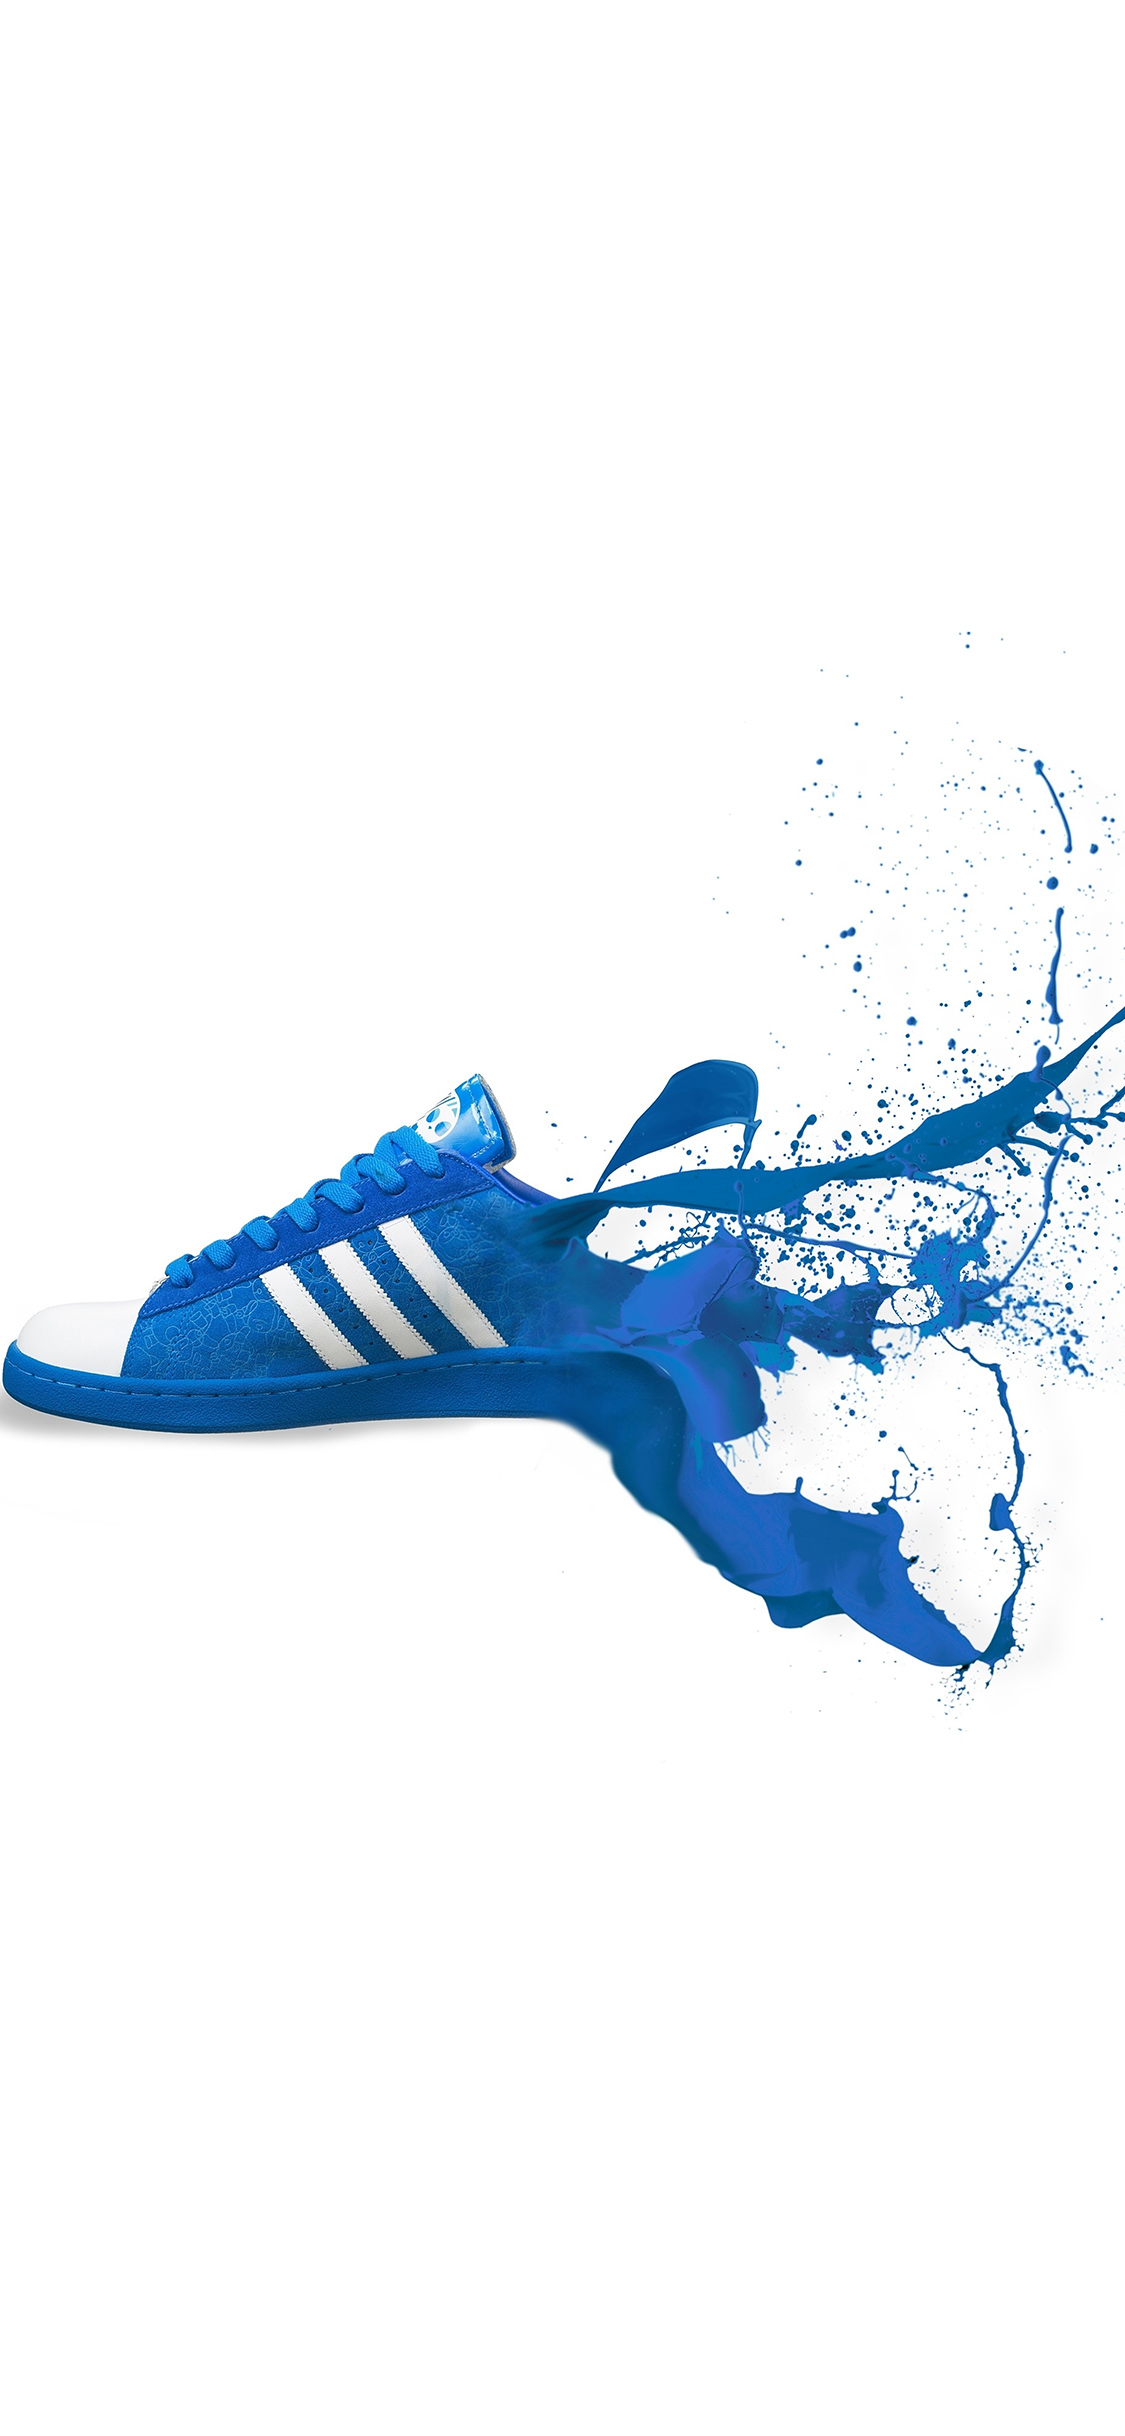 Iphonexpapers Am05 Adidas Blue Shoes Sneakers Logo Art